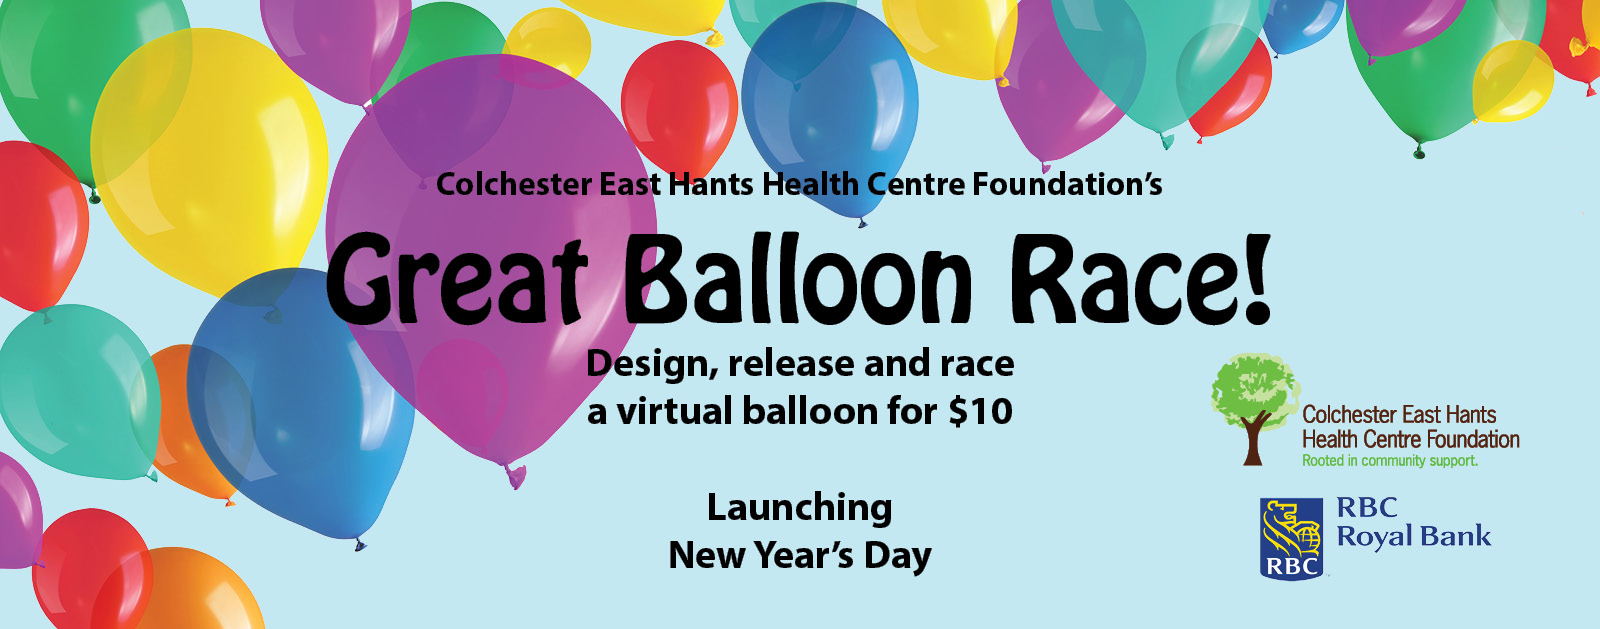 Colchester East Hants Health Centre Foundations's Great Balloon Race! Deisgn, release and race a virtual ballon for $10. Launching New Year's Day.